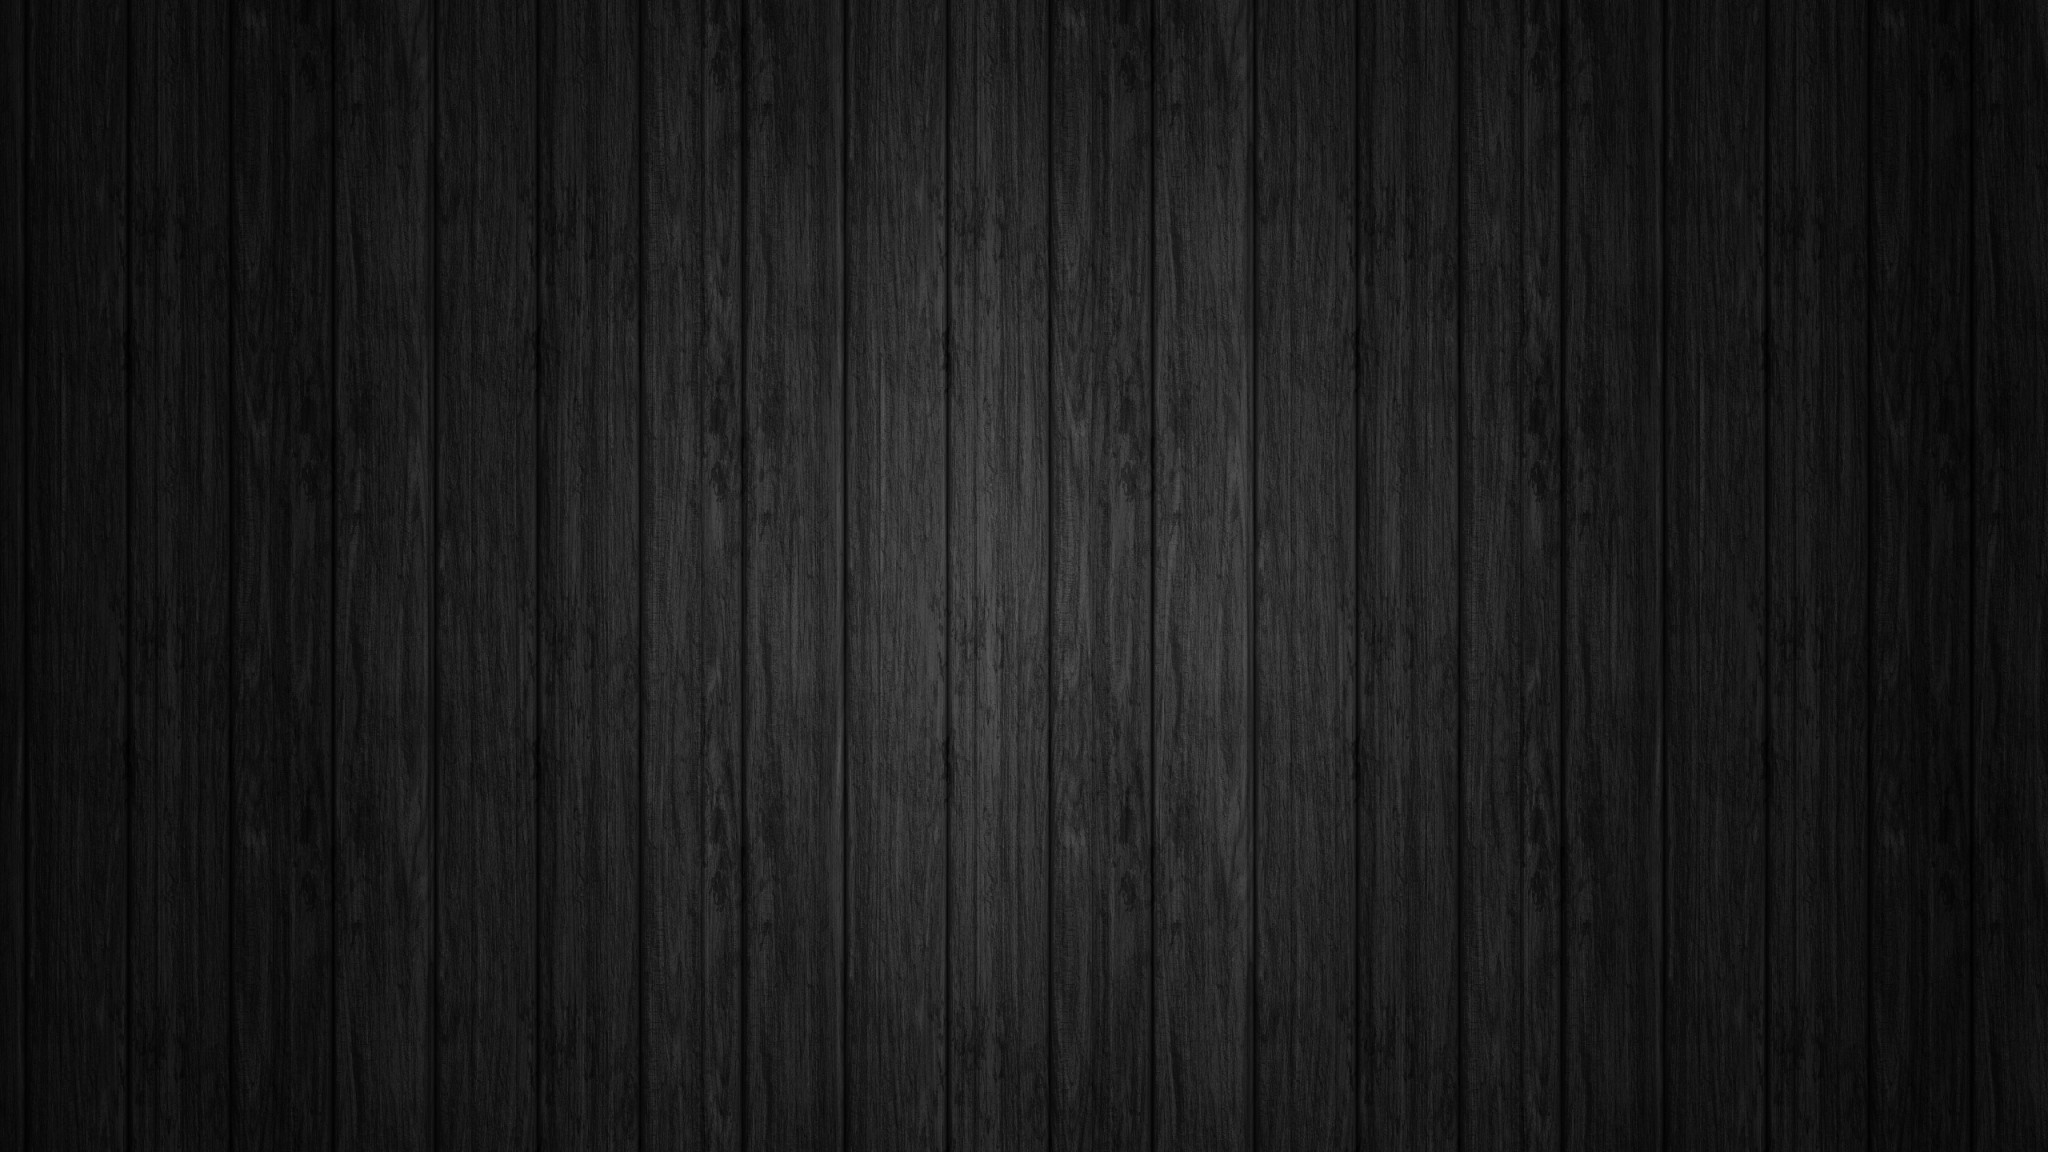 Preview wallpaper board, black, line, texture, background, wood 2048×1152